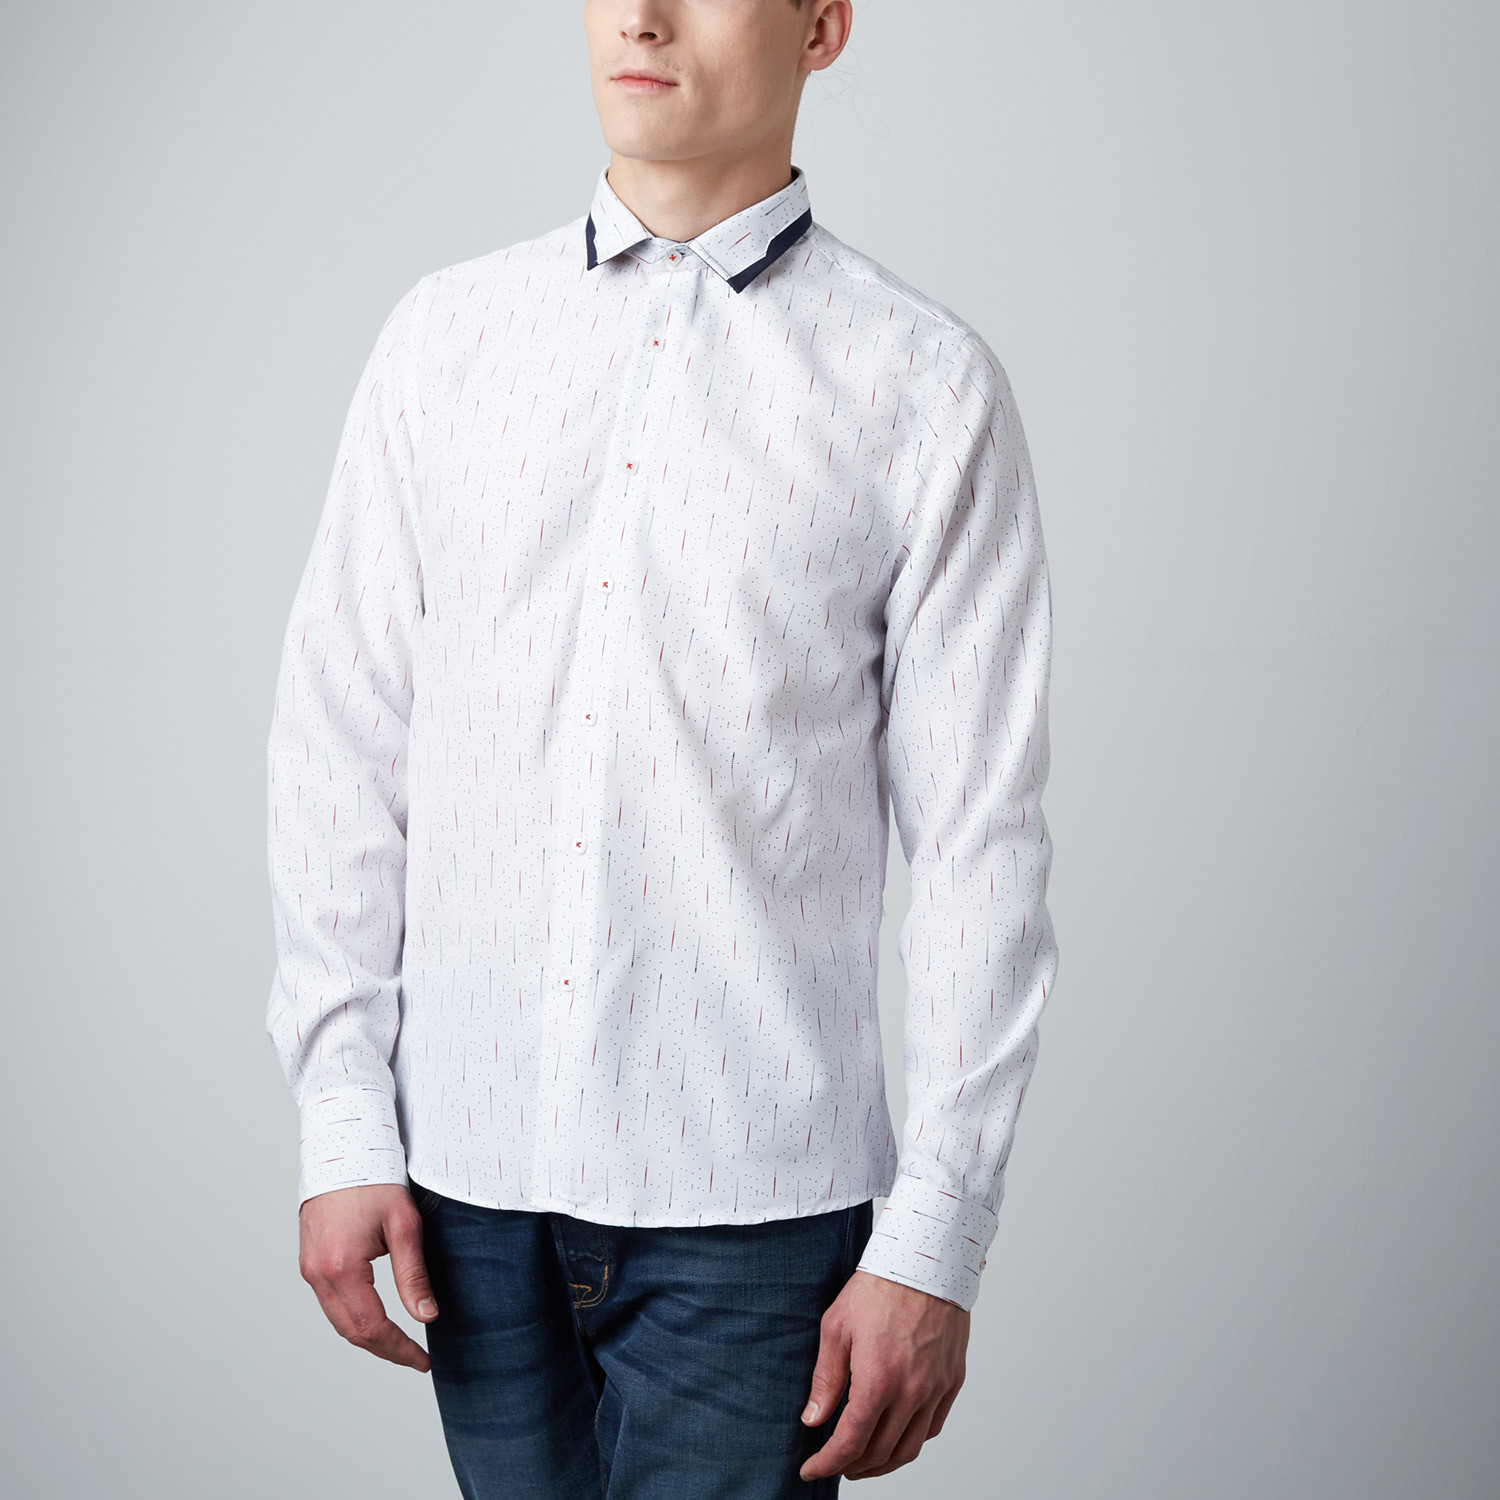 Meteor shower button up dress shirt white s rosso for Meteorite milano